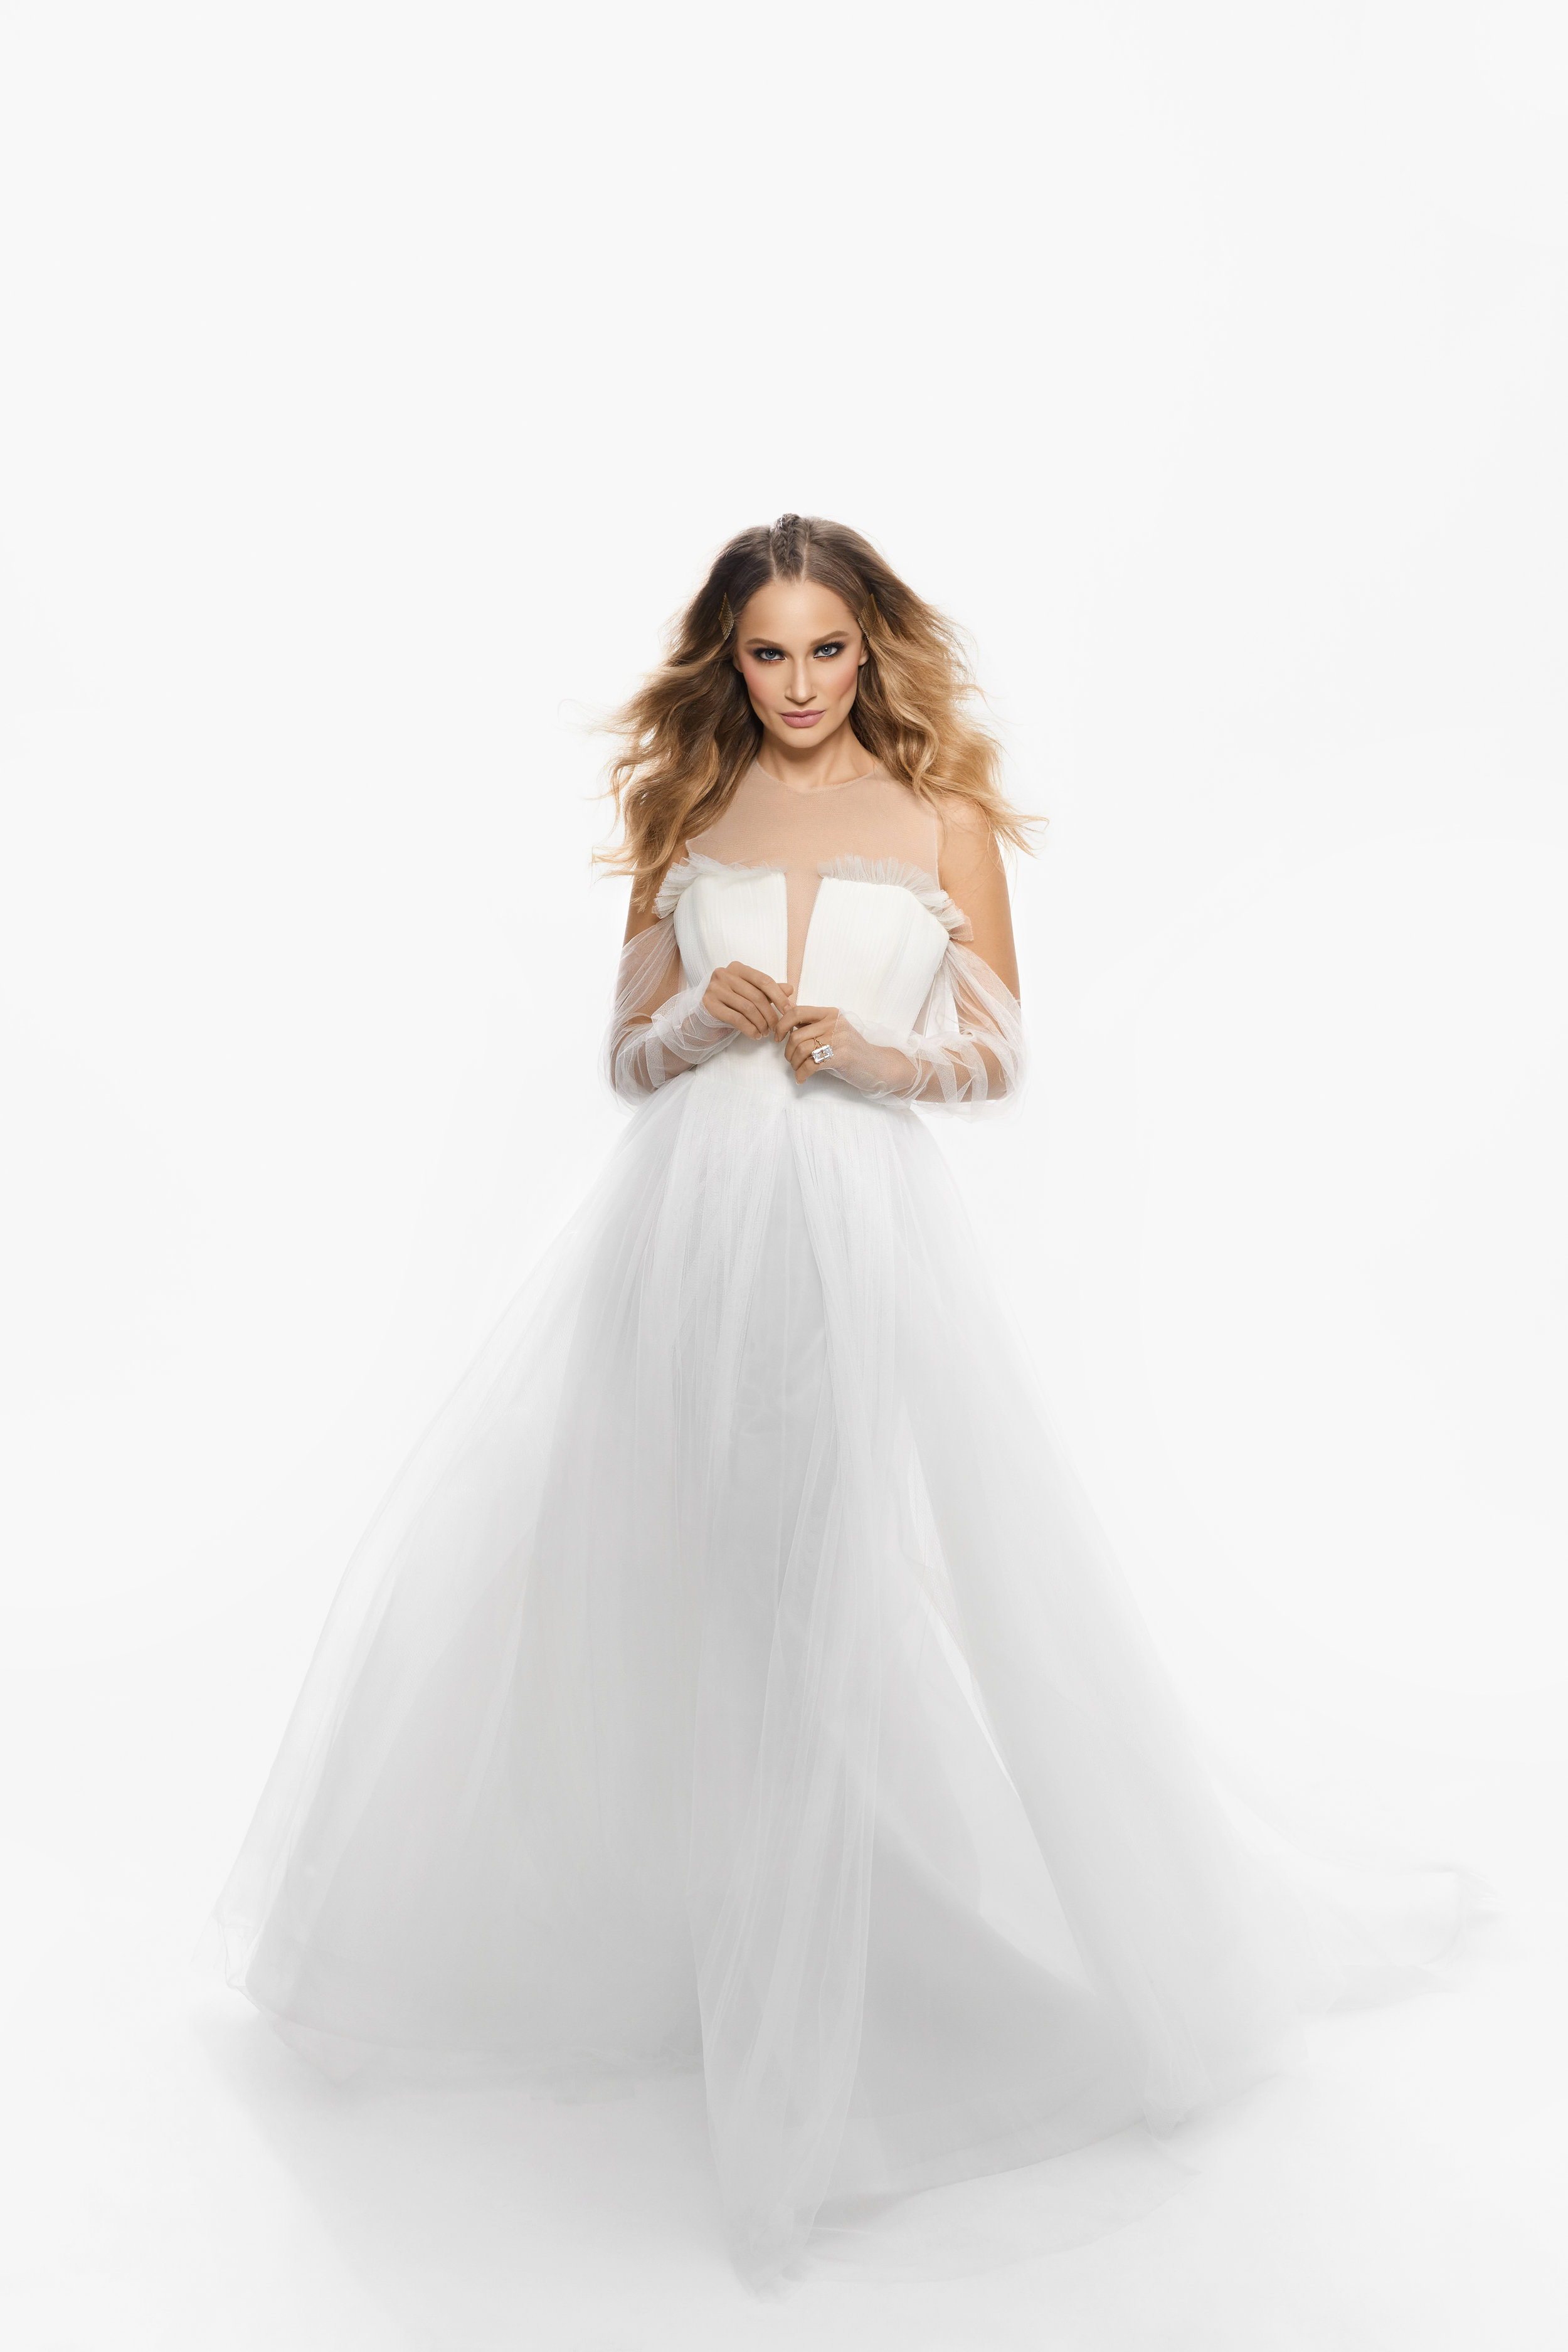 August In Bloom - Bride in Vera Wang princess dress and accessories - Purely Poised (The Bridal Affair)